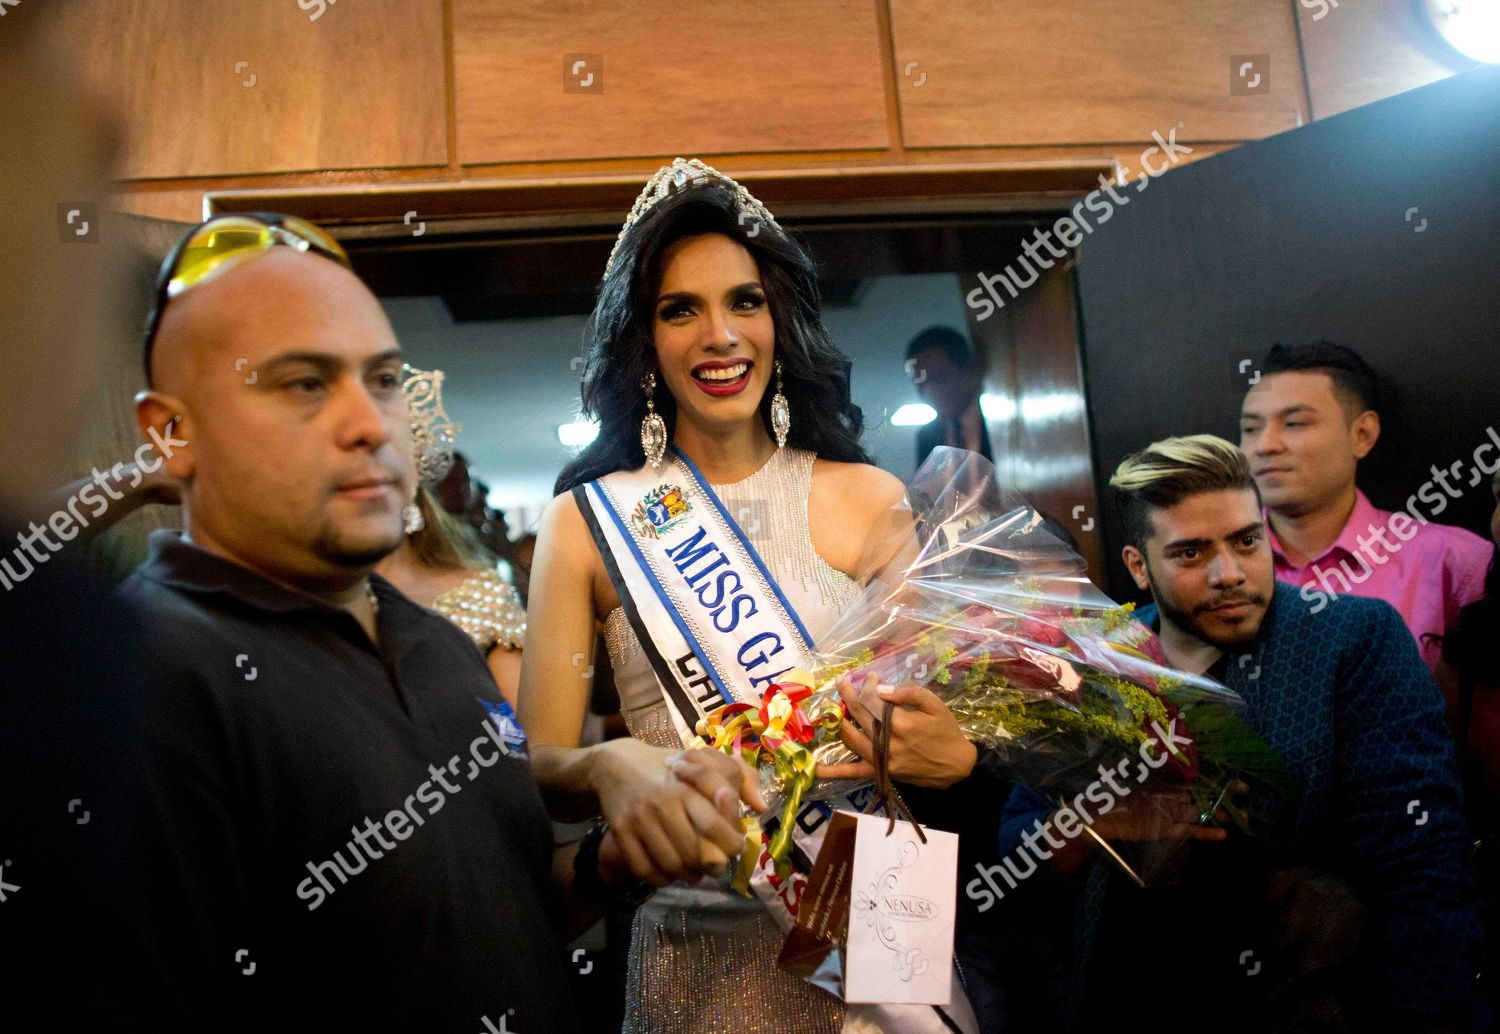 Miss Gay Photo Gallery, Caracas, Venezuela - 18 Oct 2015